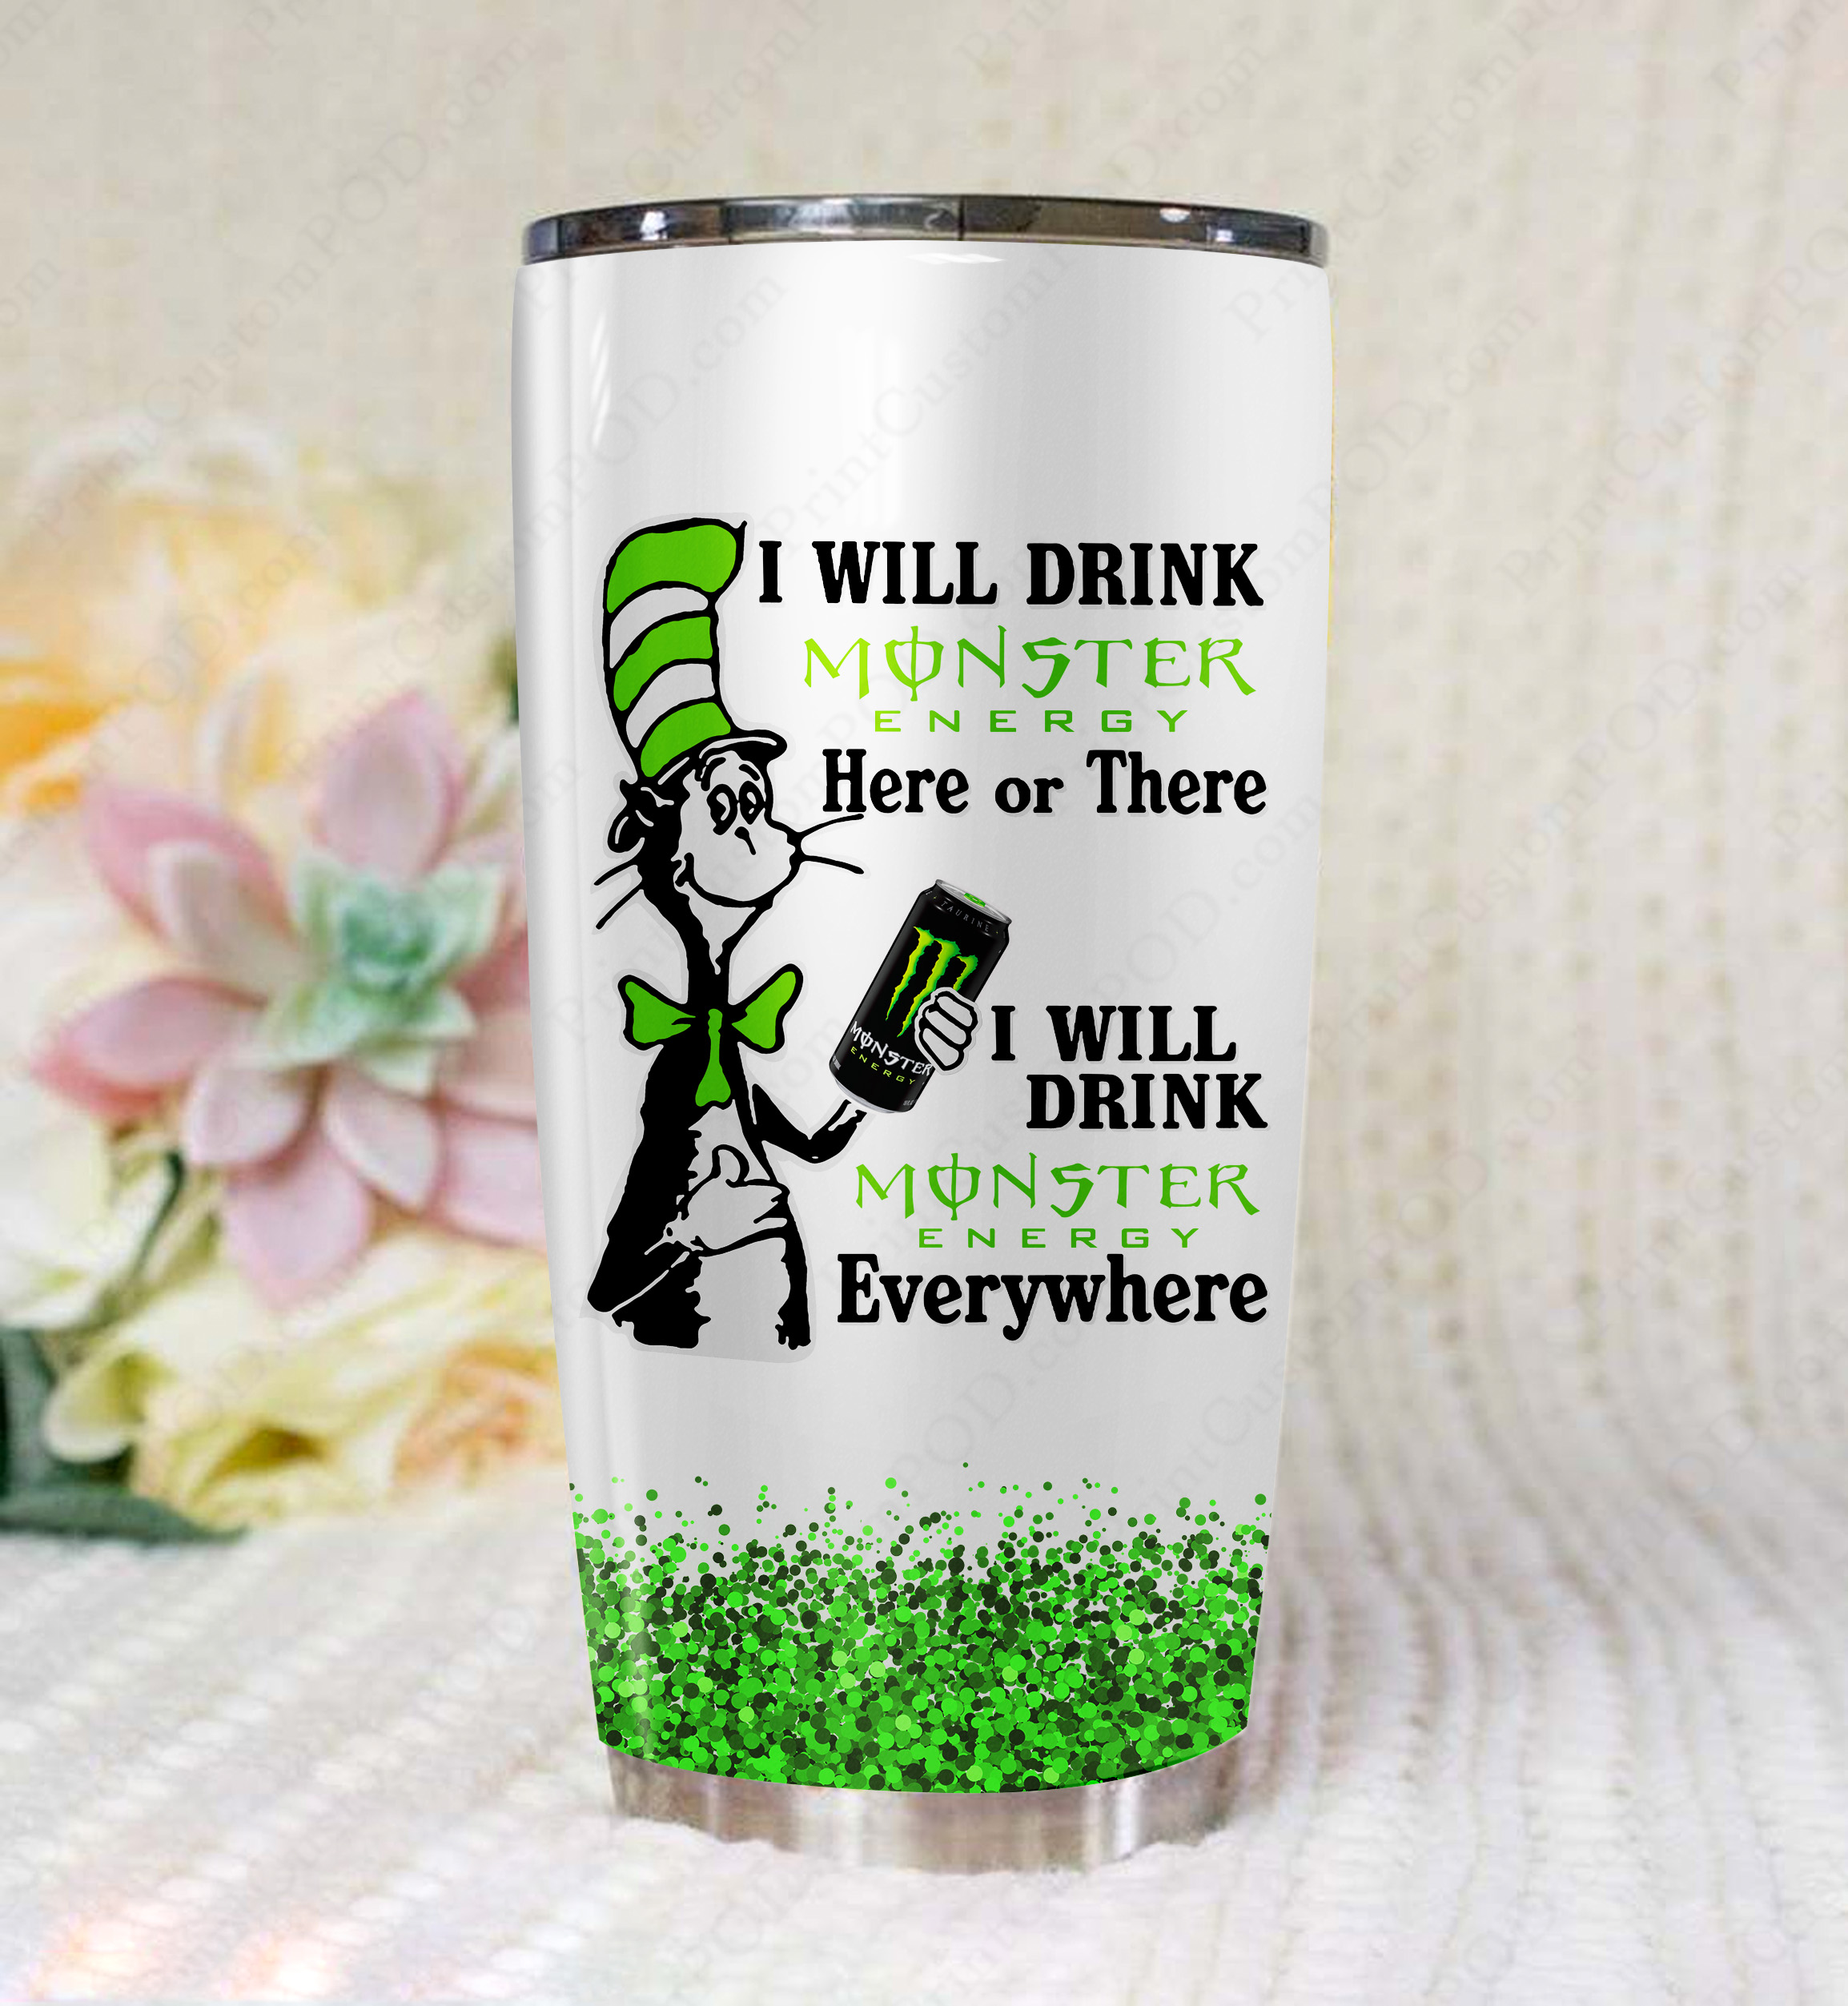 Dr seuss i will drink monster energy full over printed tumbler 2